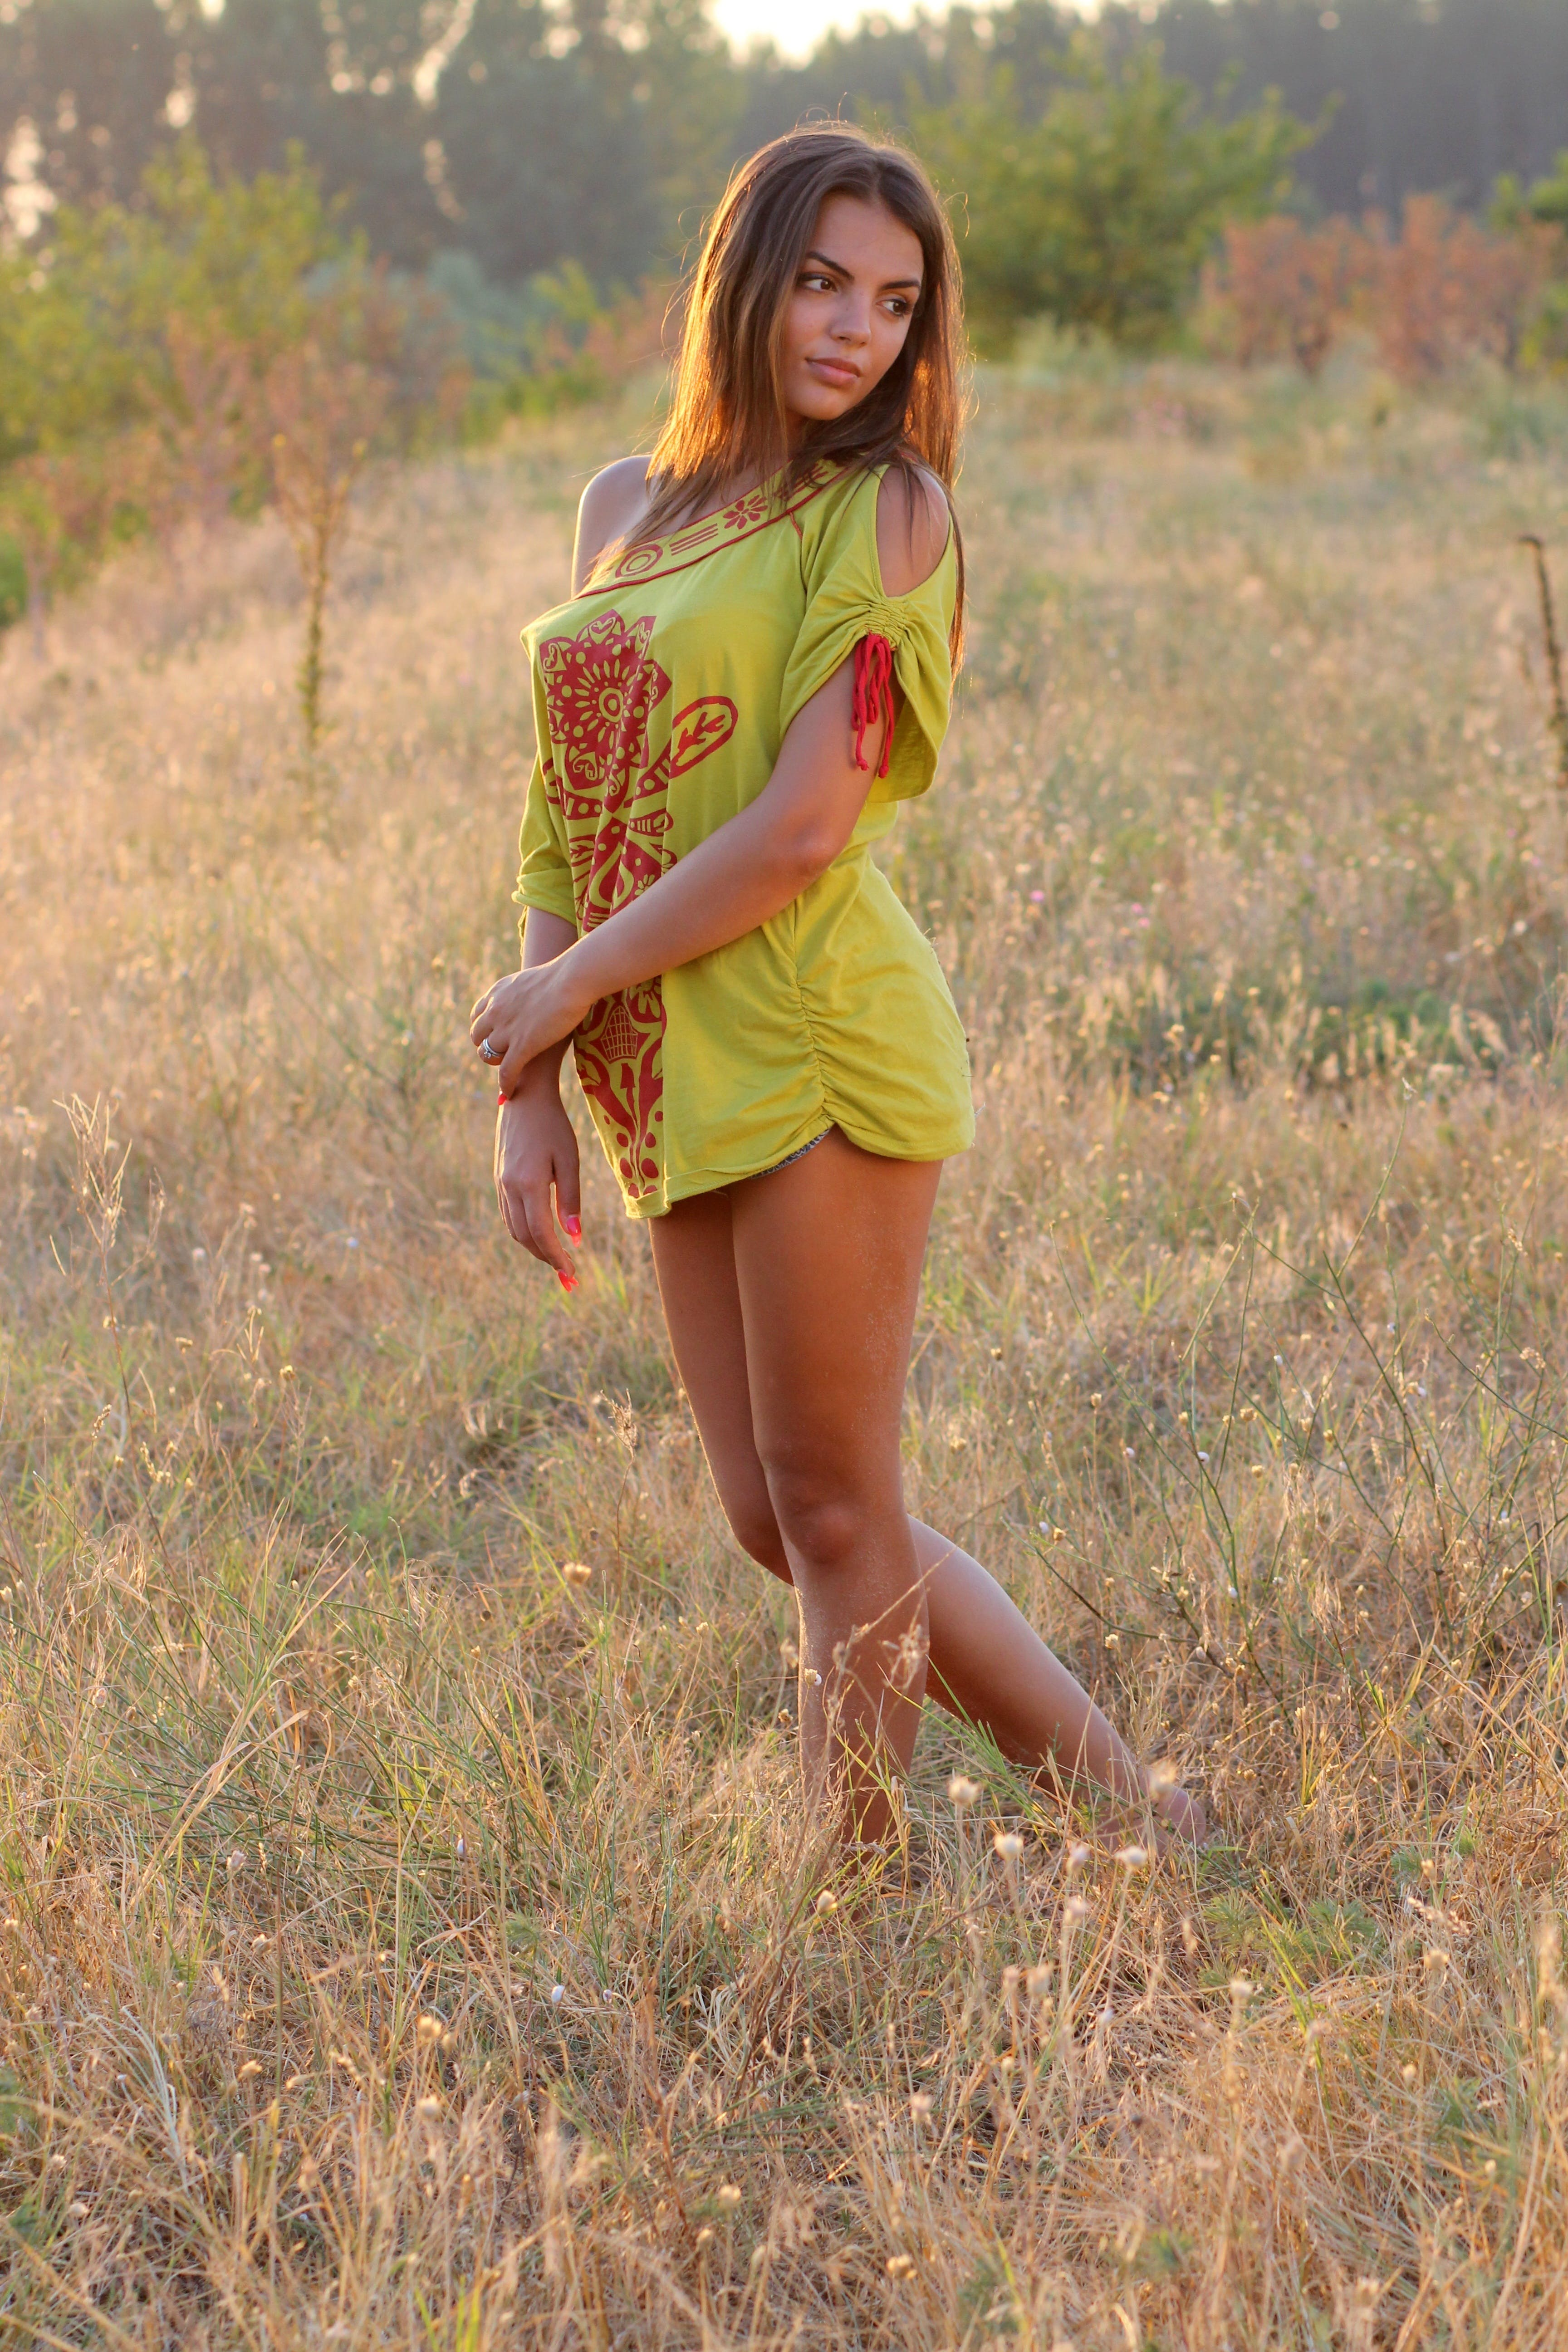 Woman in Yellow Red Floral One Shoulder Shirt Standing on Brown Grass during Daytime